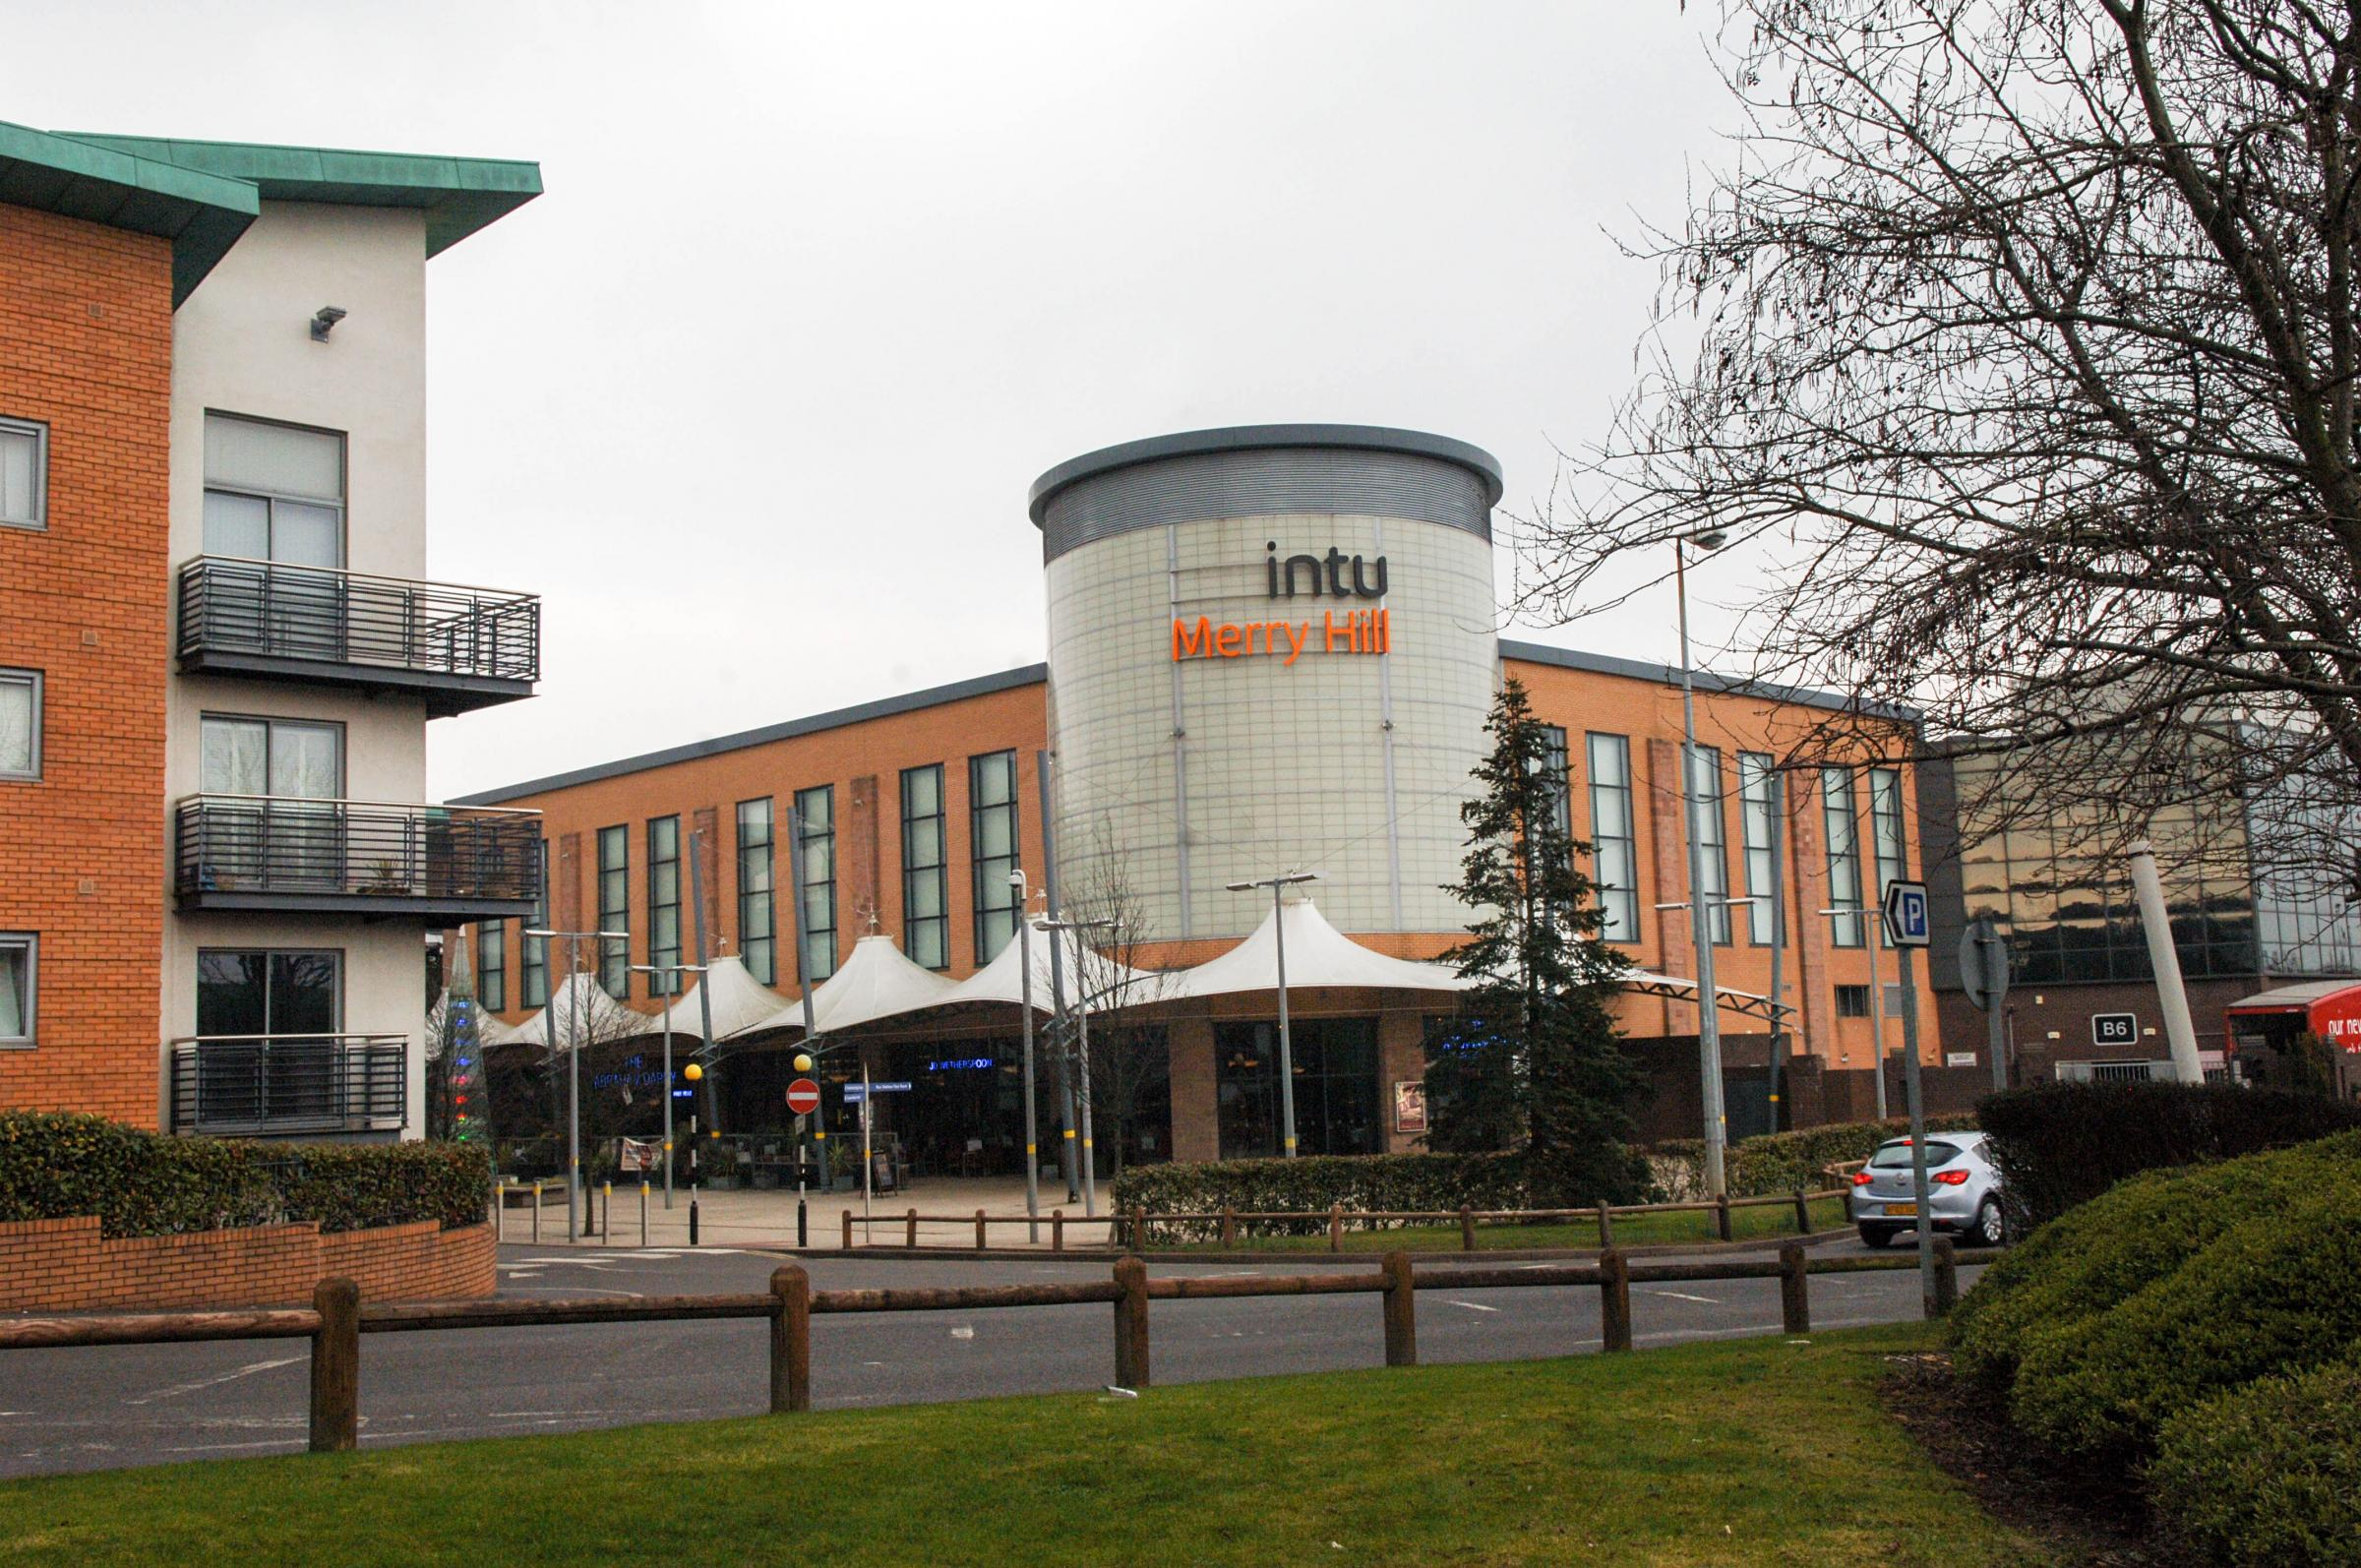 Merry Hill shopping centre, where the alleged attack took place. Picture: Louise Adey.